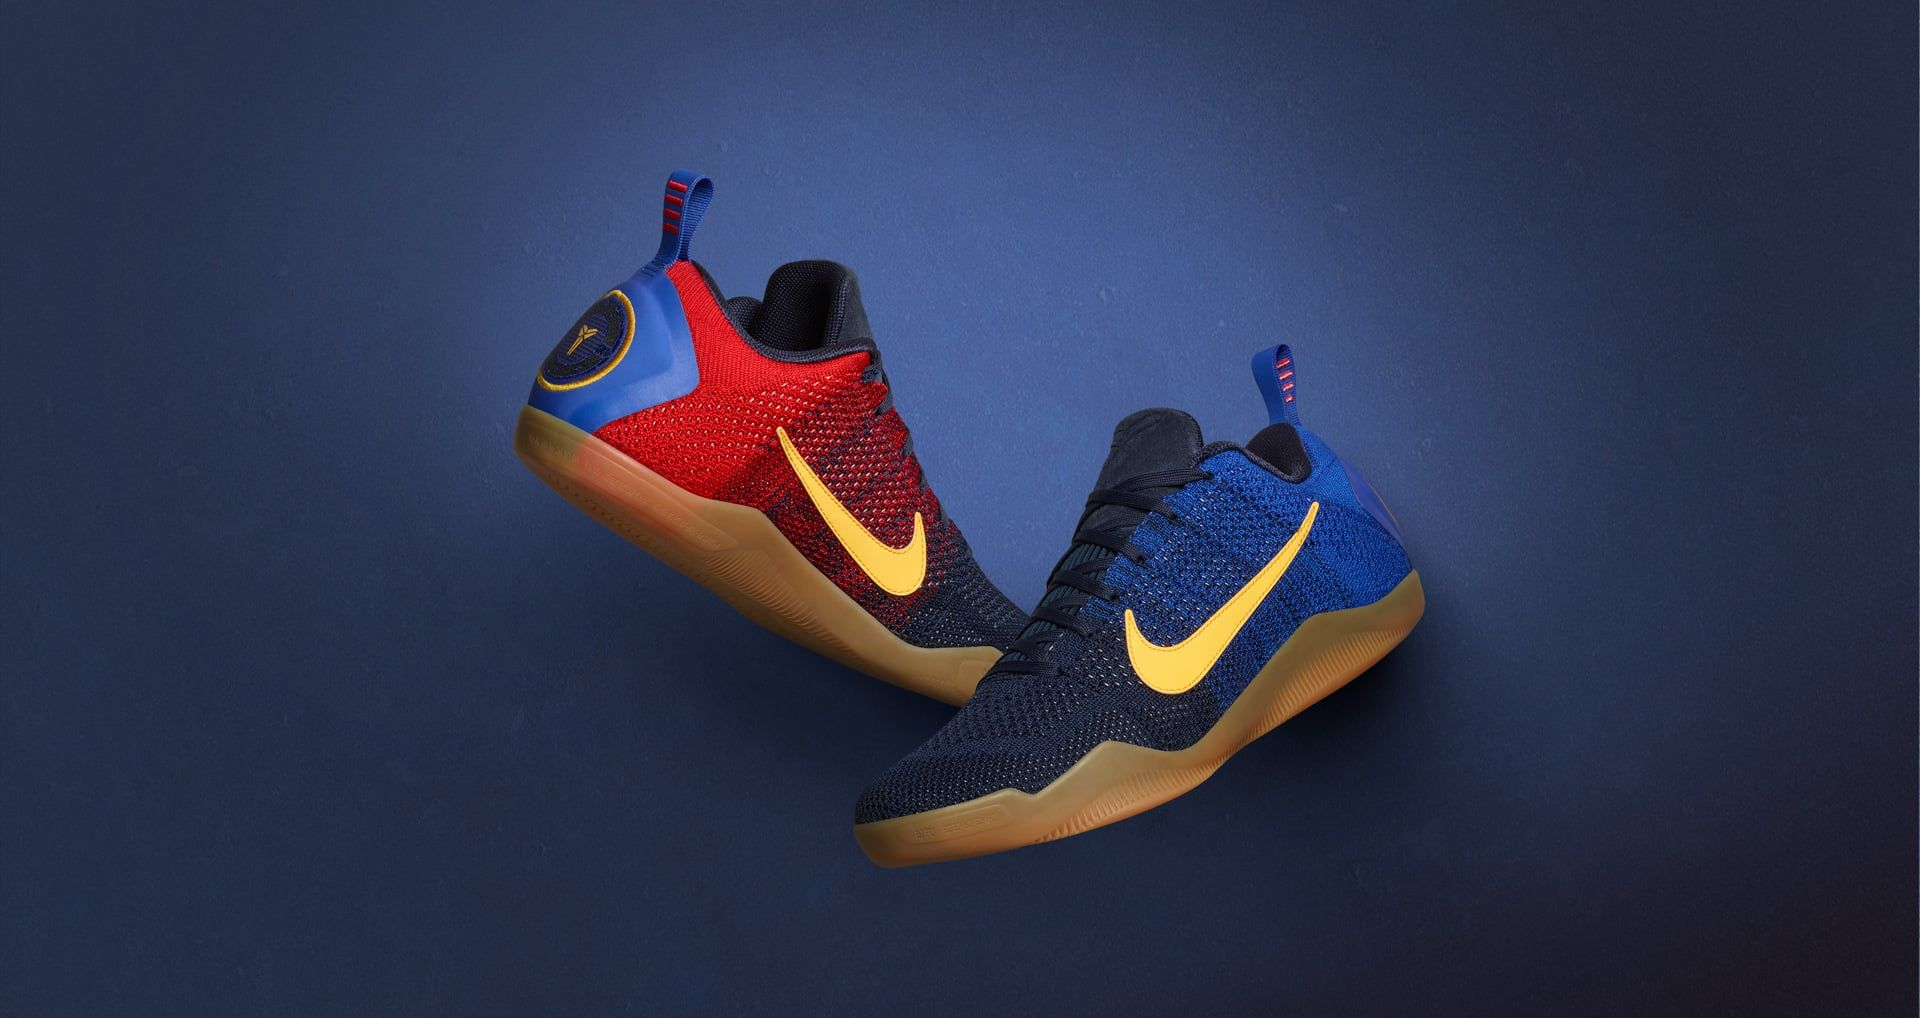 timeless design ac084 7e722 Nike Kobe 11 Elite Low Mambacurial  Racer Blue   University Red  Release  Date. Nike+ SNKRS